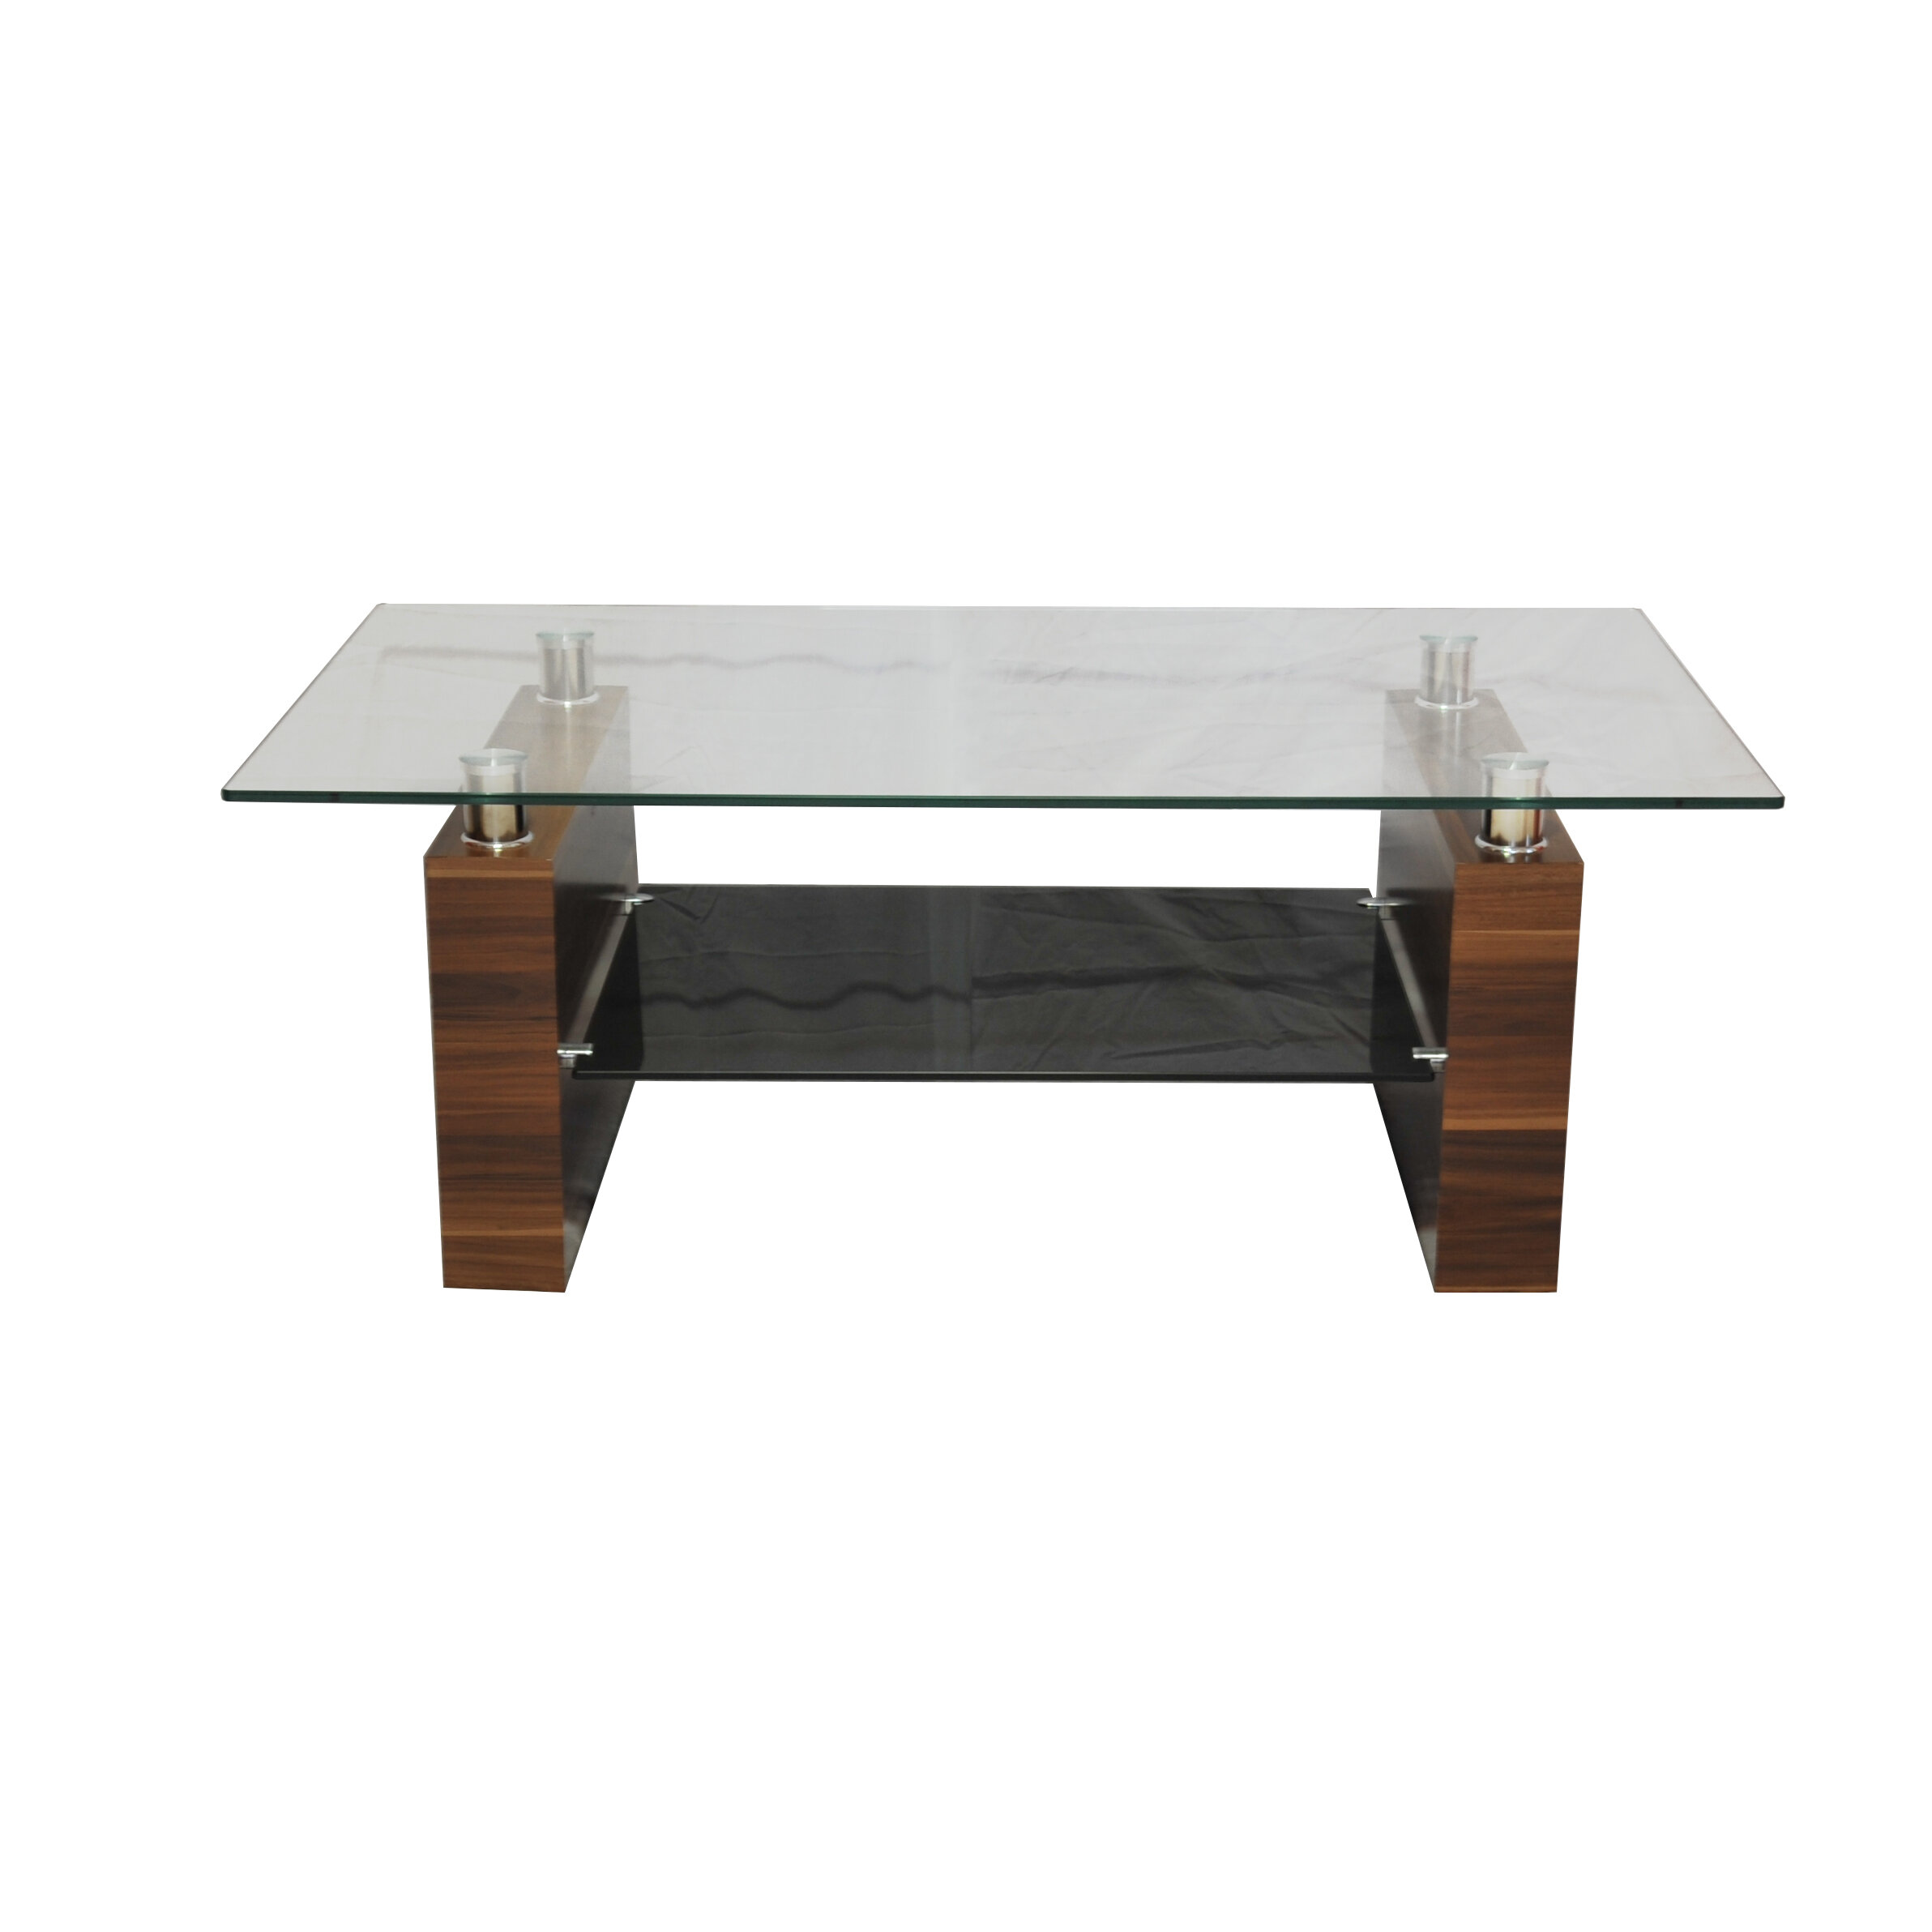 Tier e Designs Coffee Table with MDF Base & Reviews